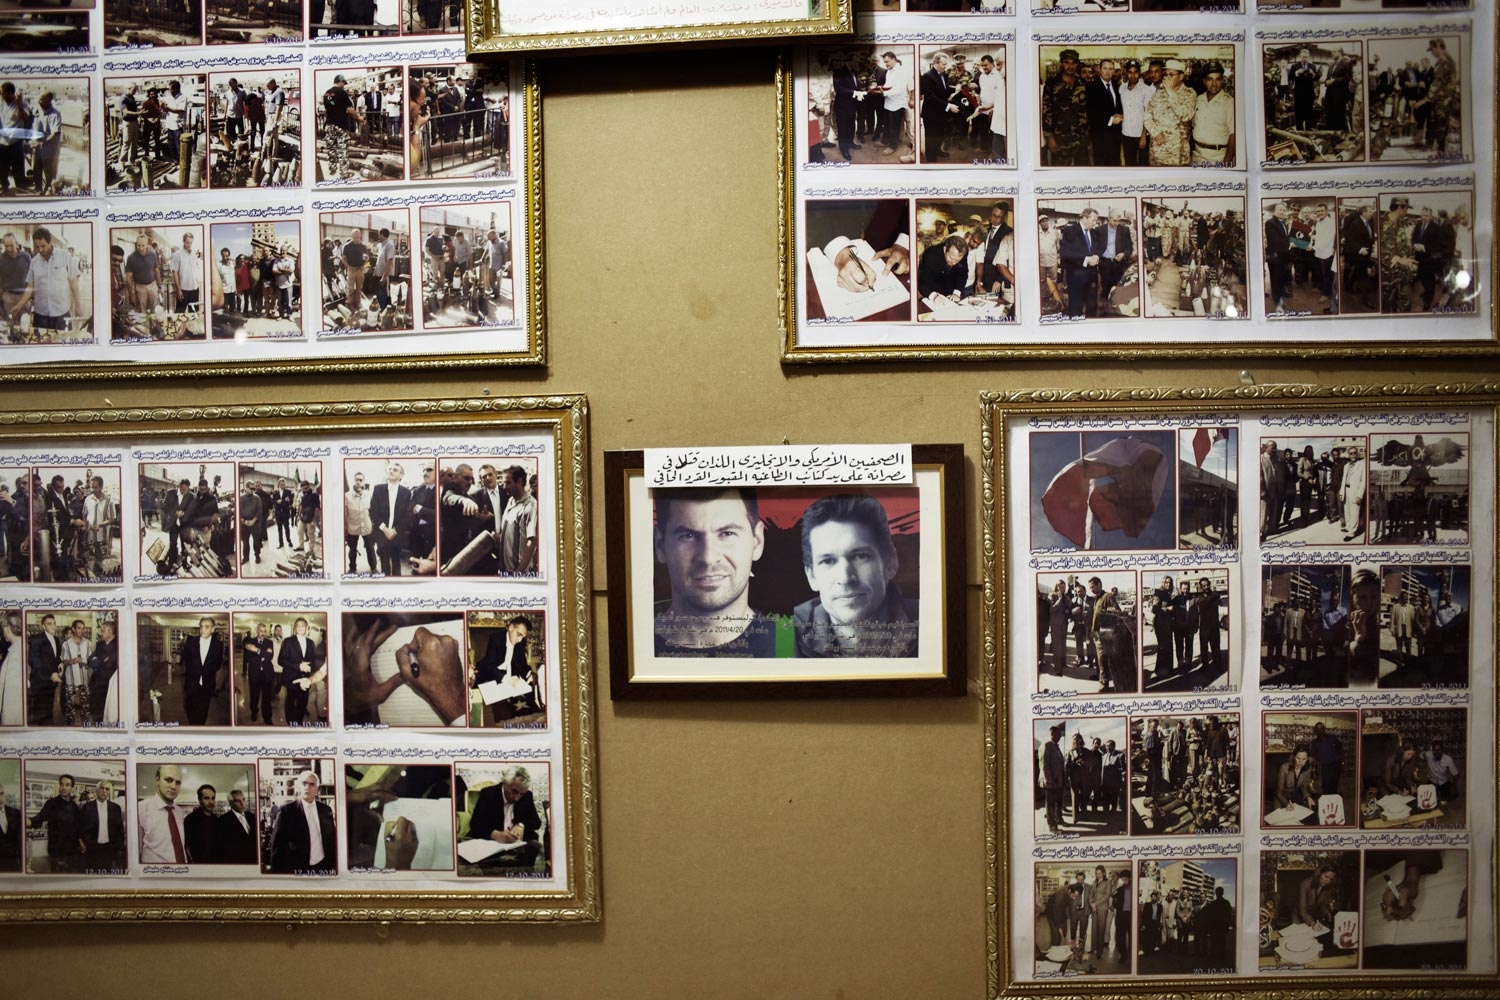 A photograph memorializing Chris Hondros and Tim Hetherington hangs inside a new museum in Misrata.